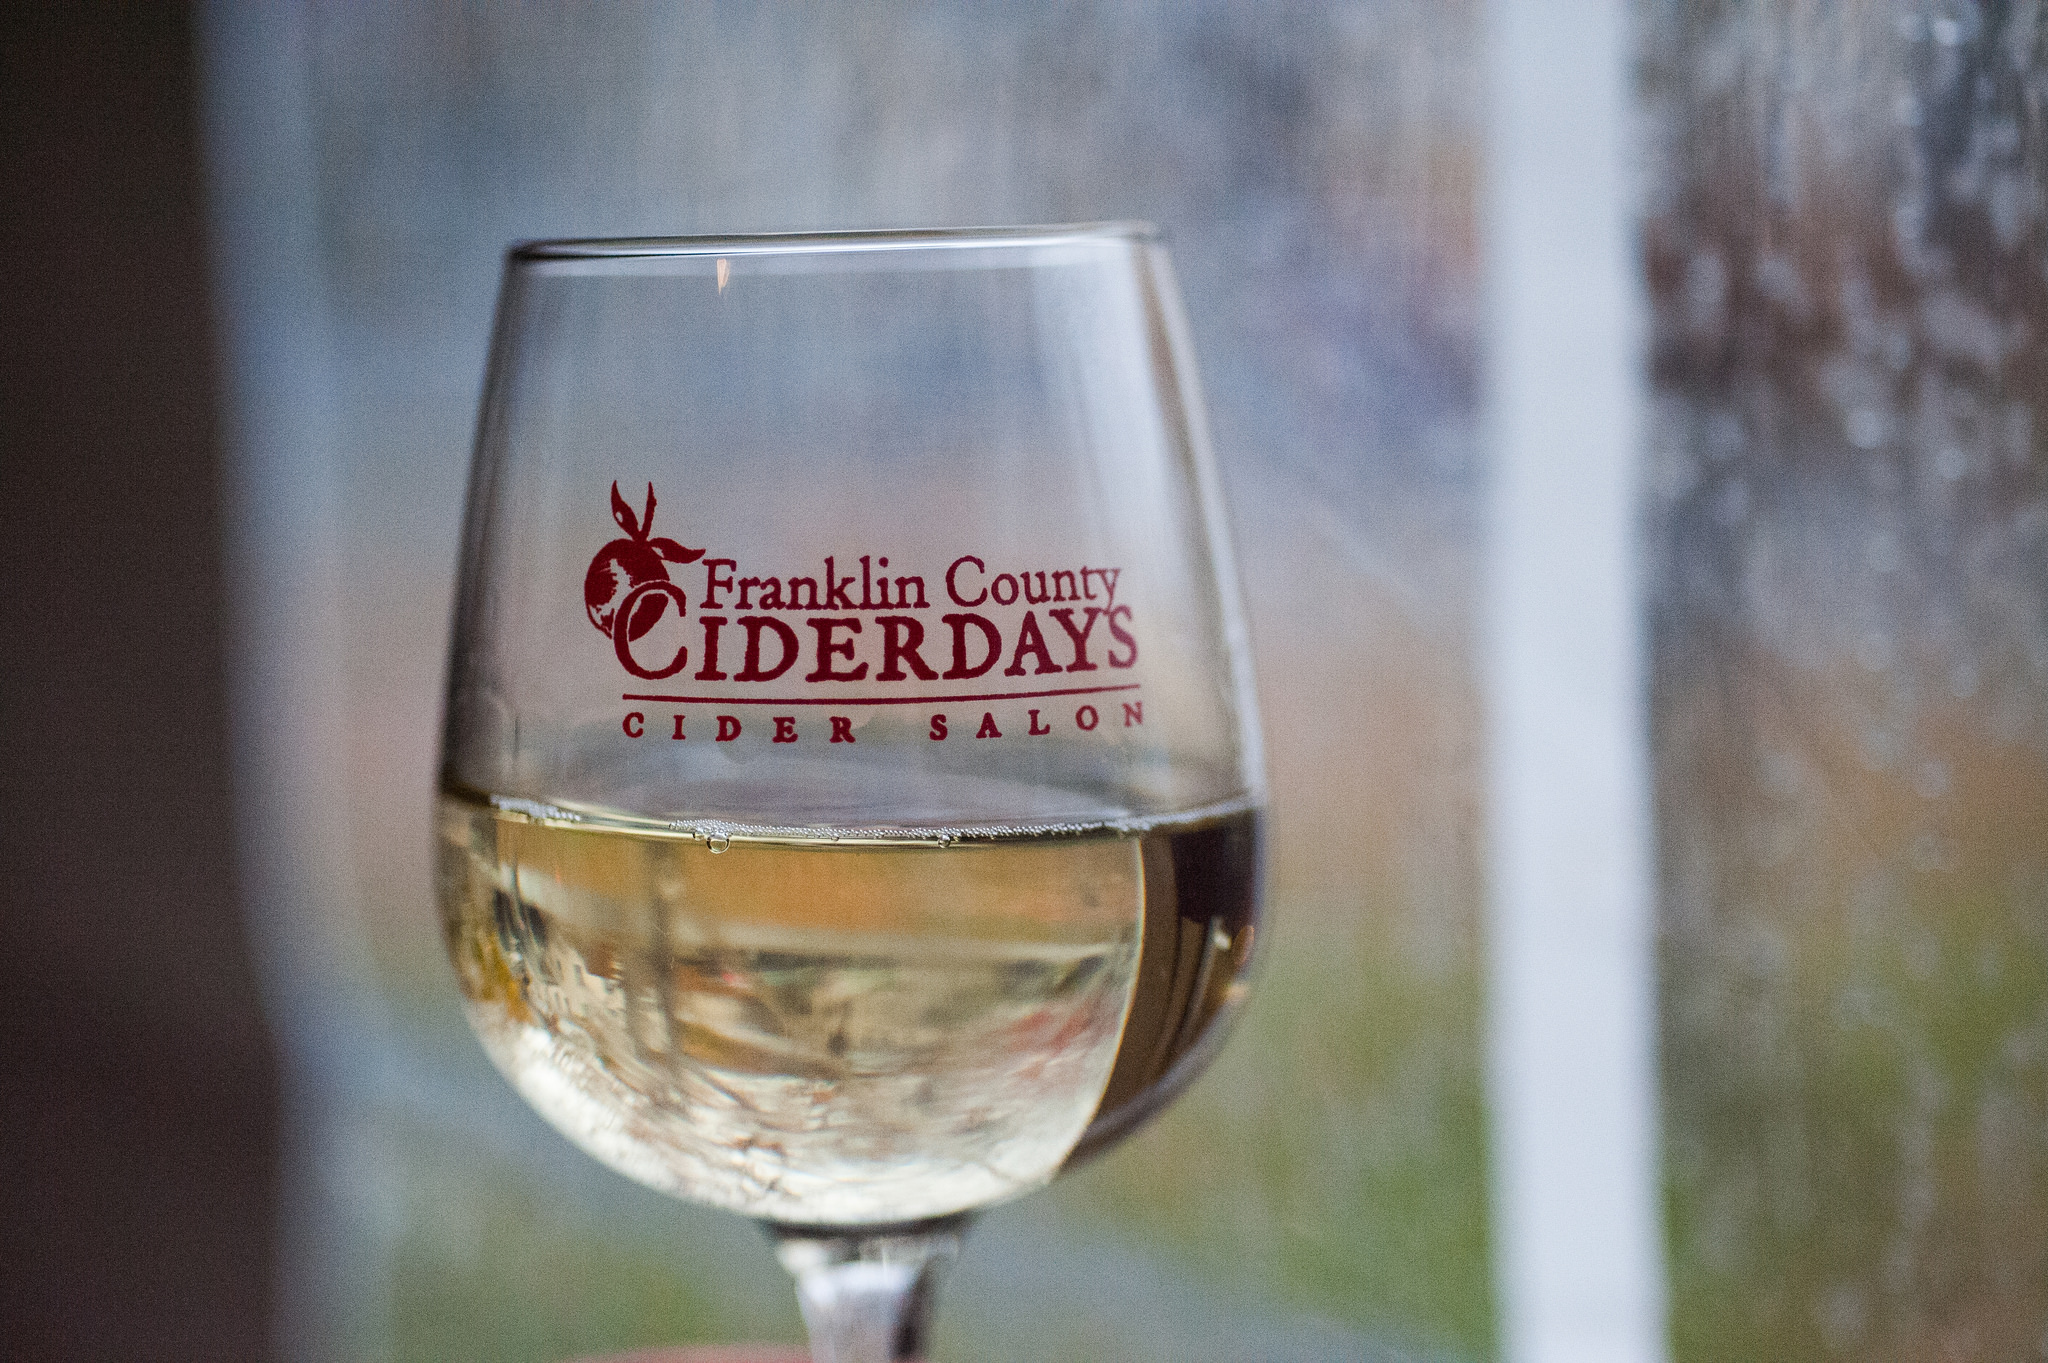 Franklin County CiderDays